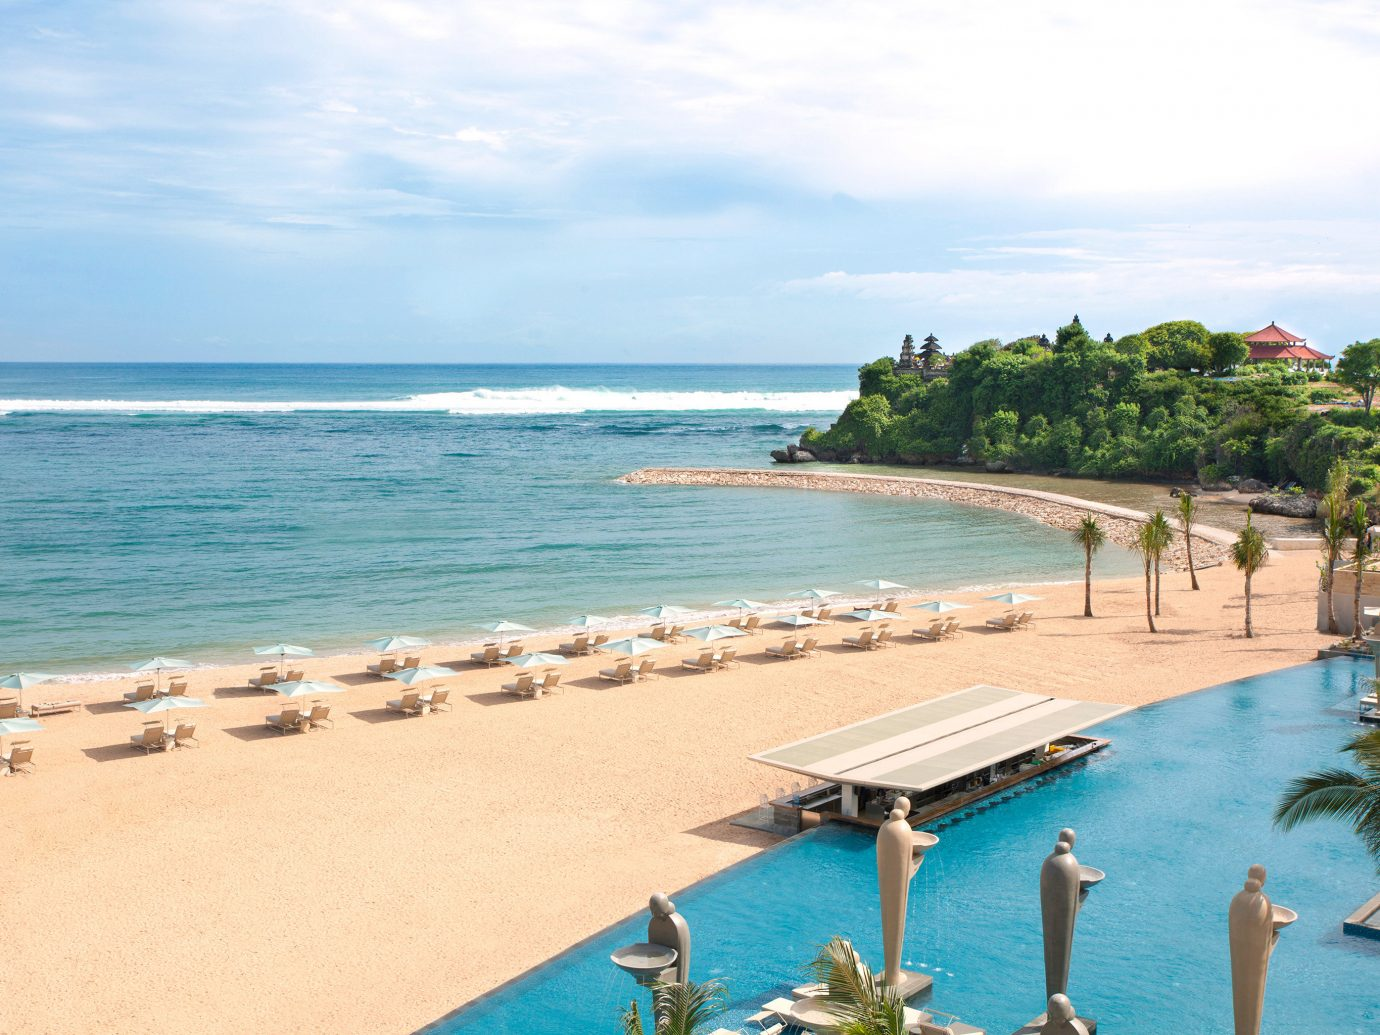 Beach Beachfront Hotels Luxury Ocean Pool Romantic Tropical sky outdoor water umbrella shore body of water Sea vacation Nature caribbean Resort Coast bay cape lawn lined sandy Island day several